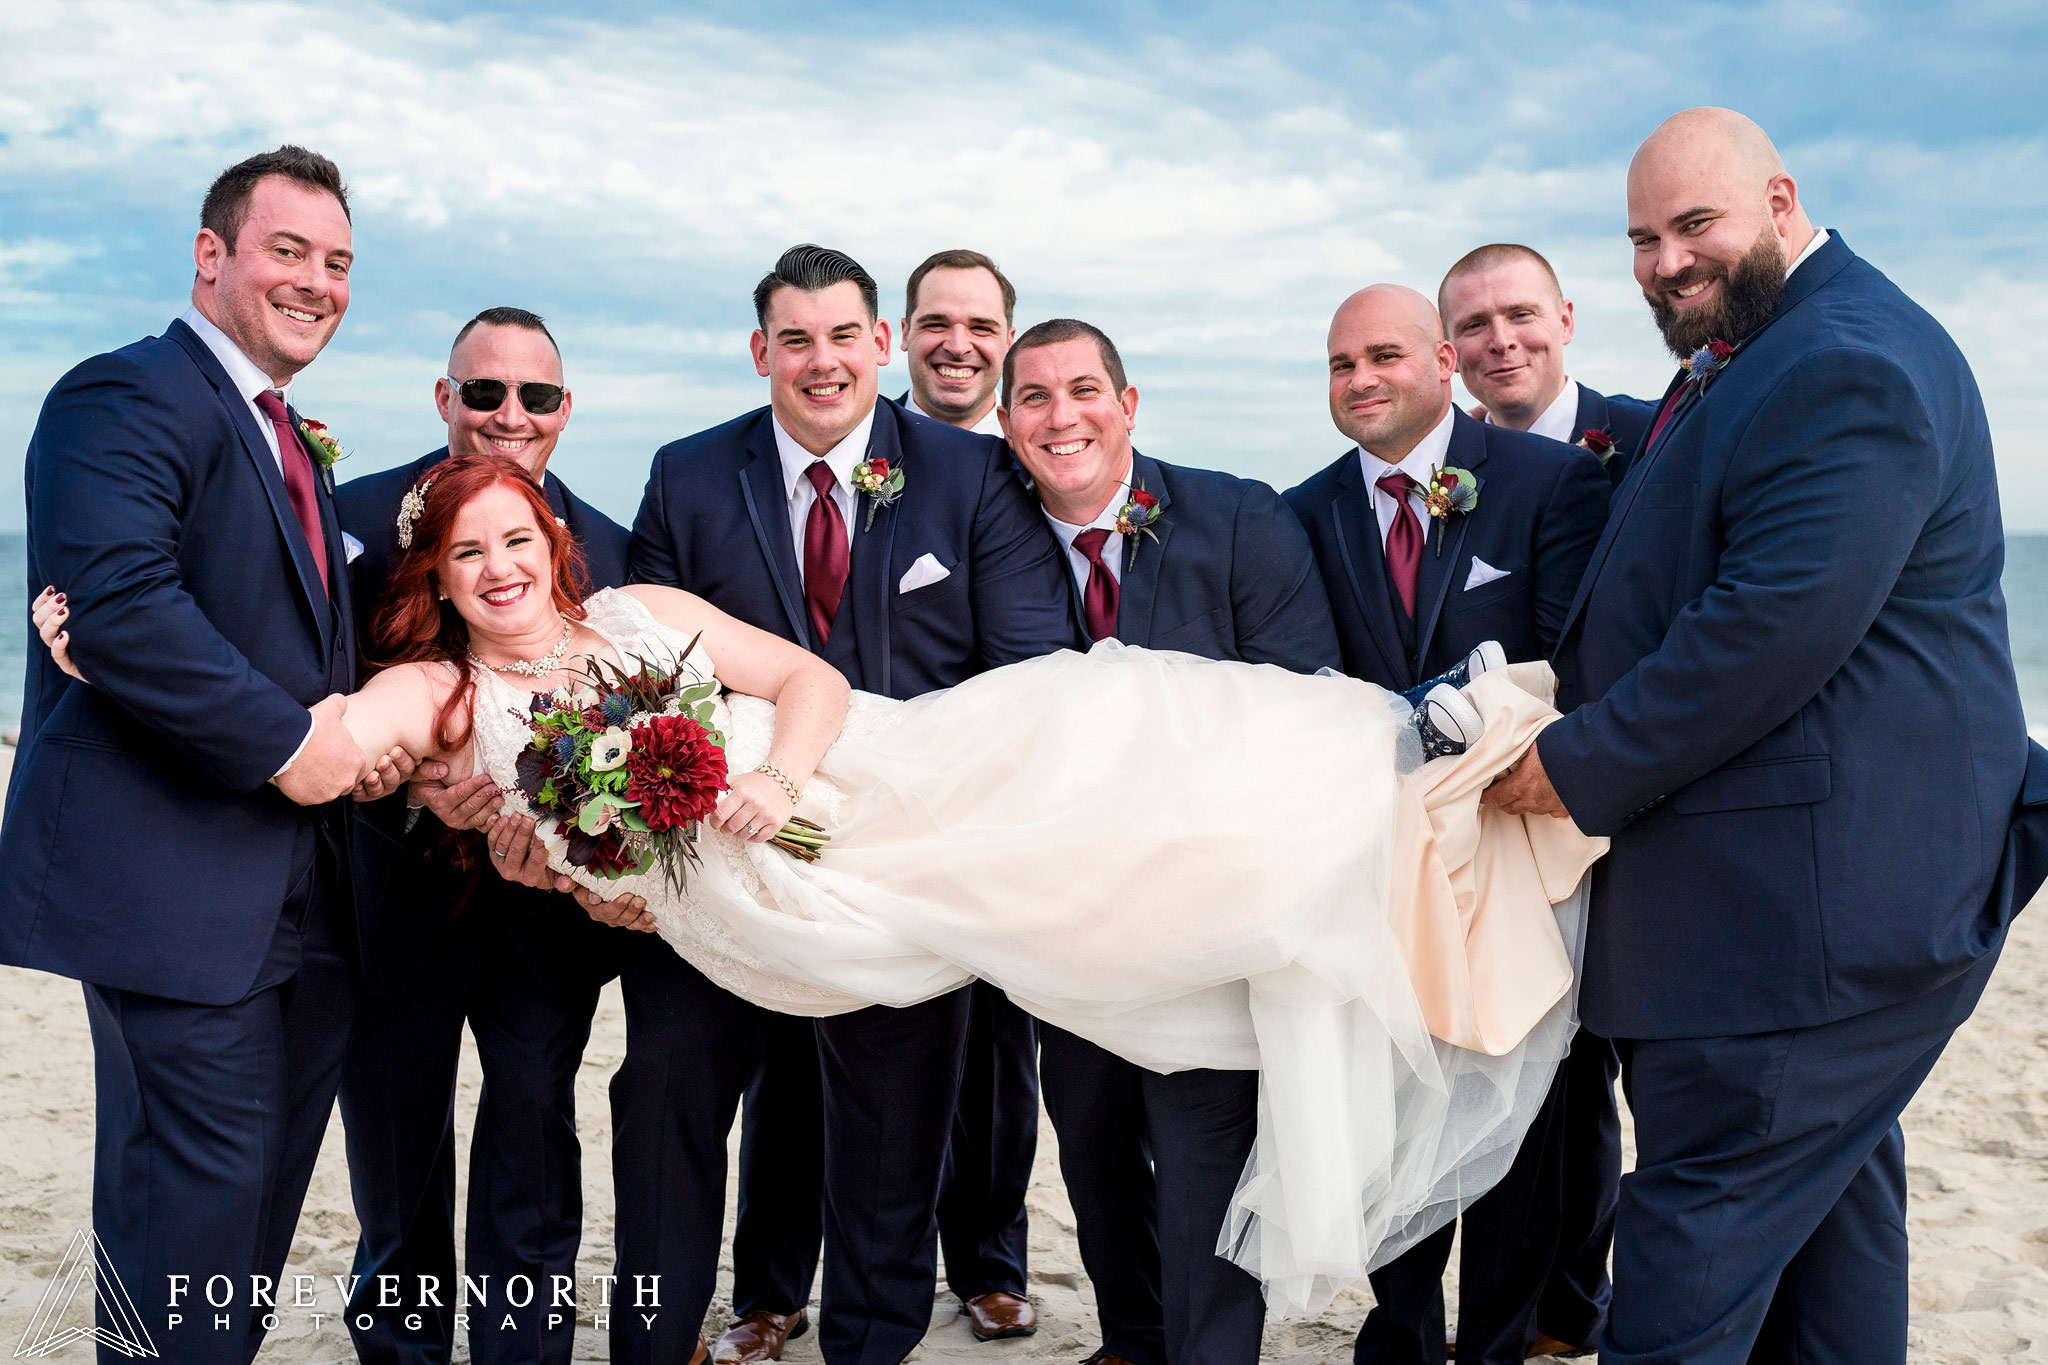 Cusanelli-Point-Pleasant-River-Rock-Wedding-Photographer-18.JPG